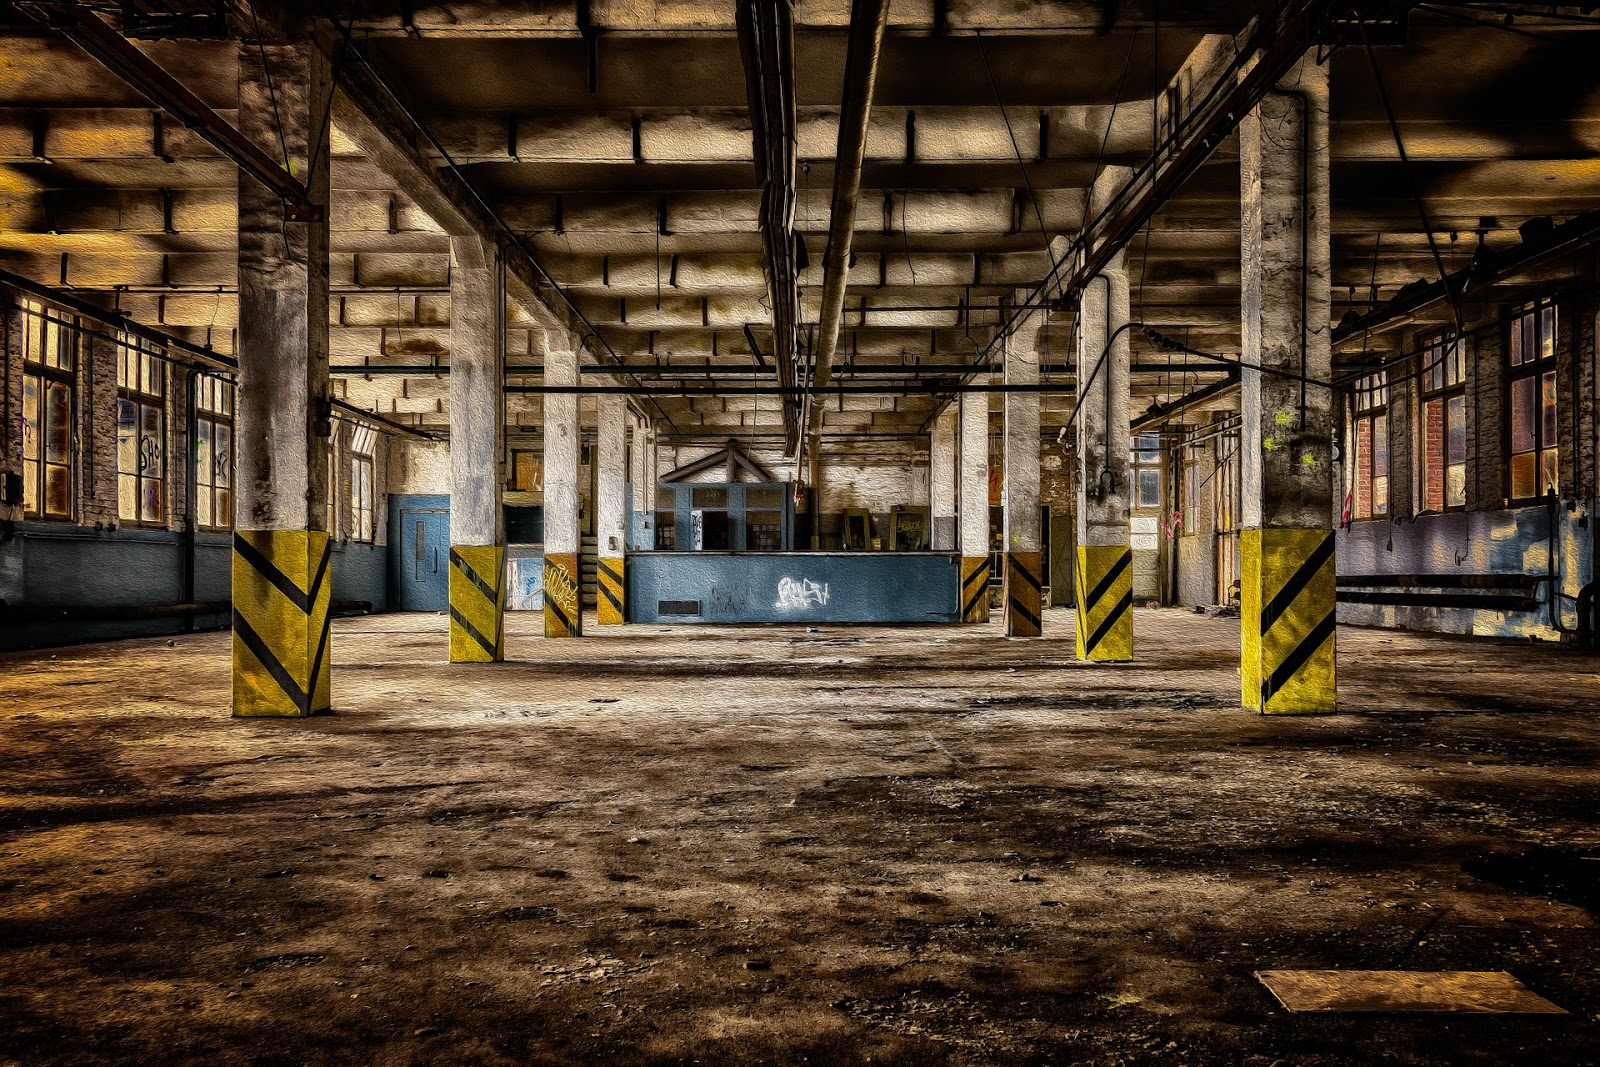 old interior of an industrial building